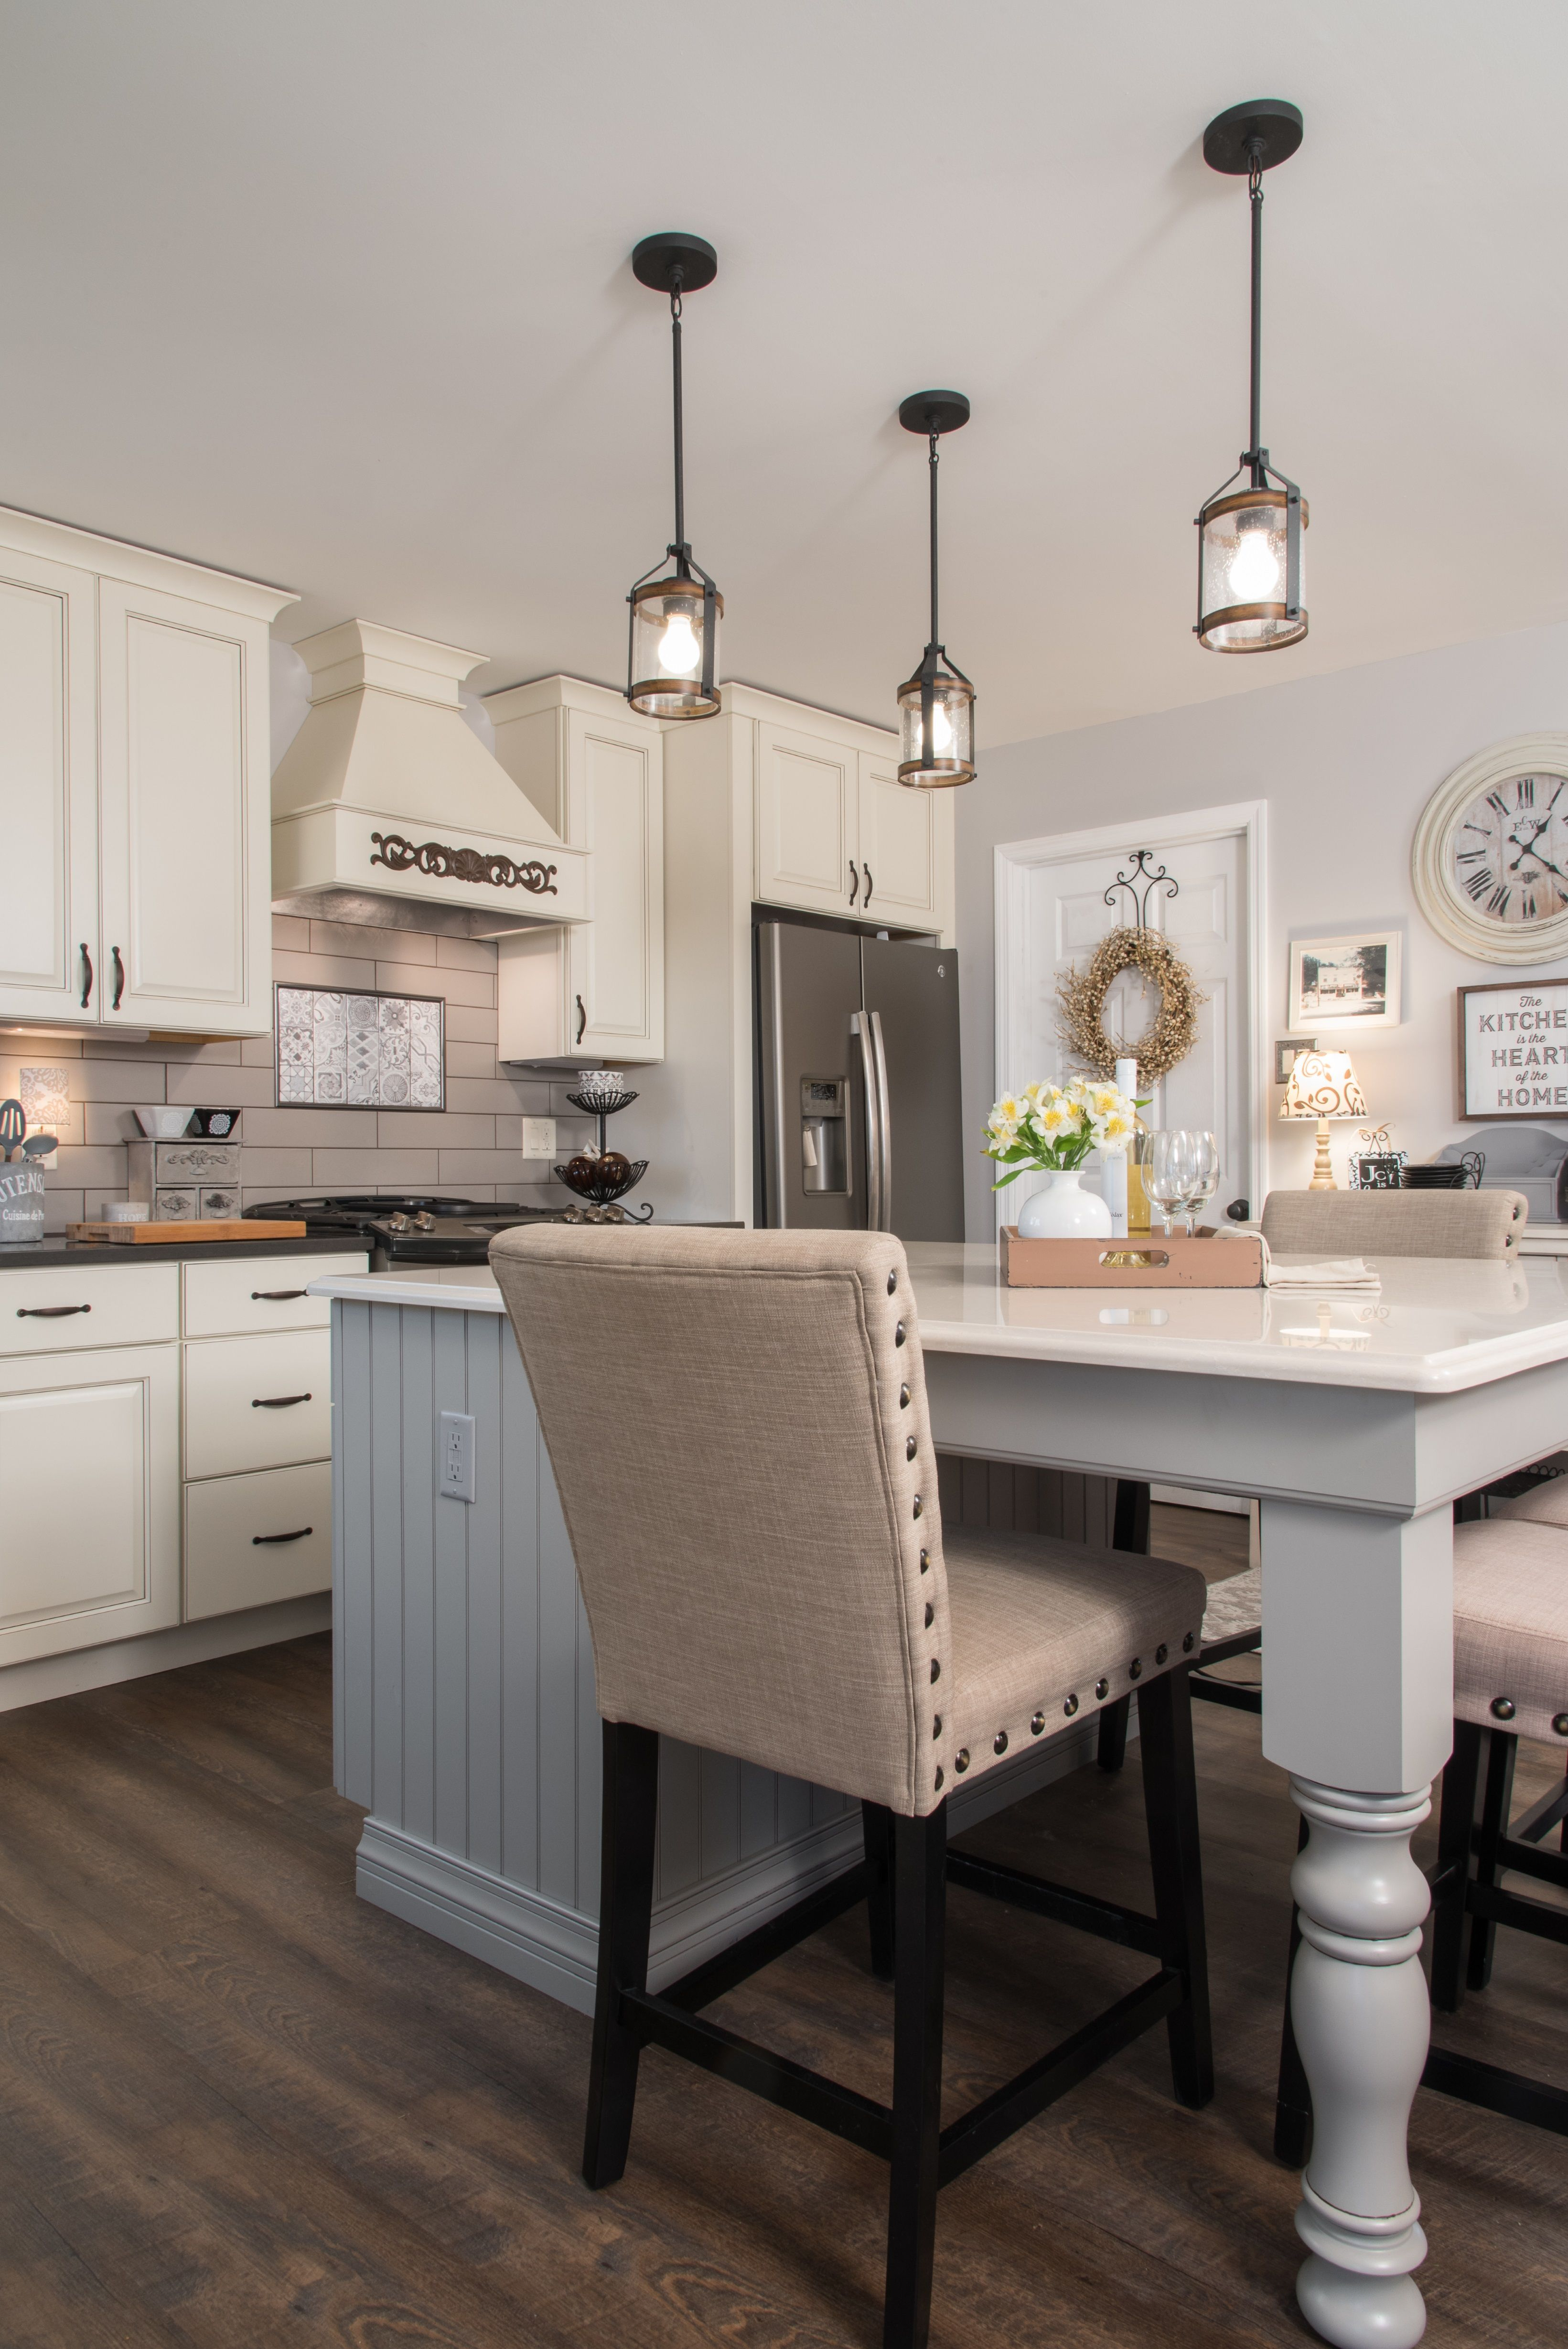 Neutral kitchens are so in the mcfarland kitchen from designer lisa clark will give you